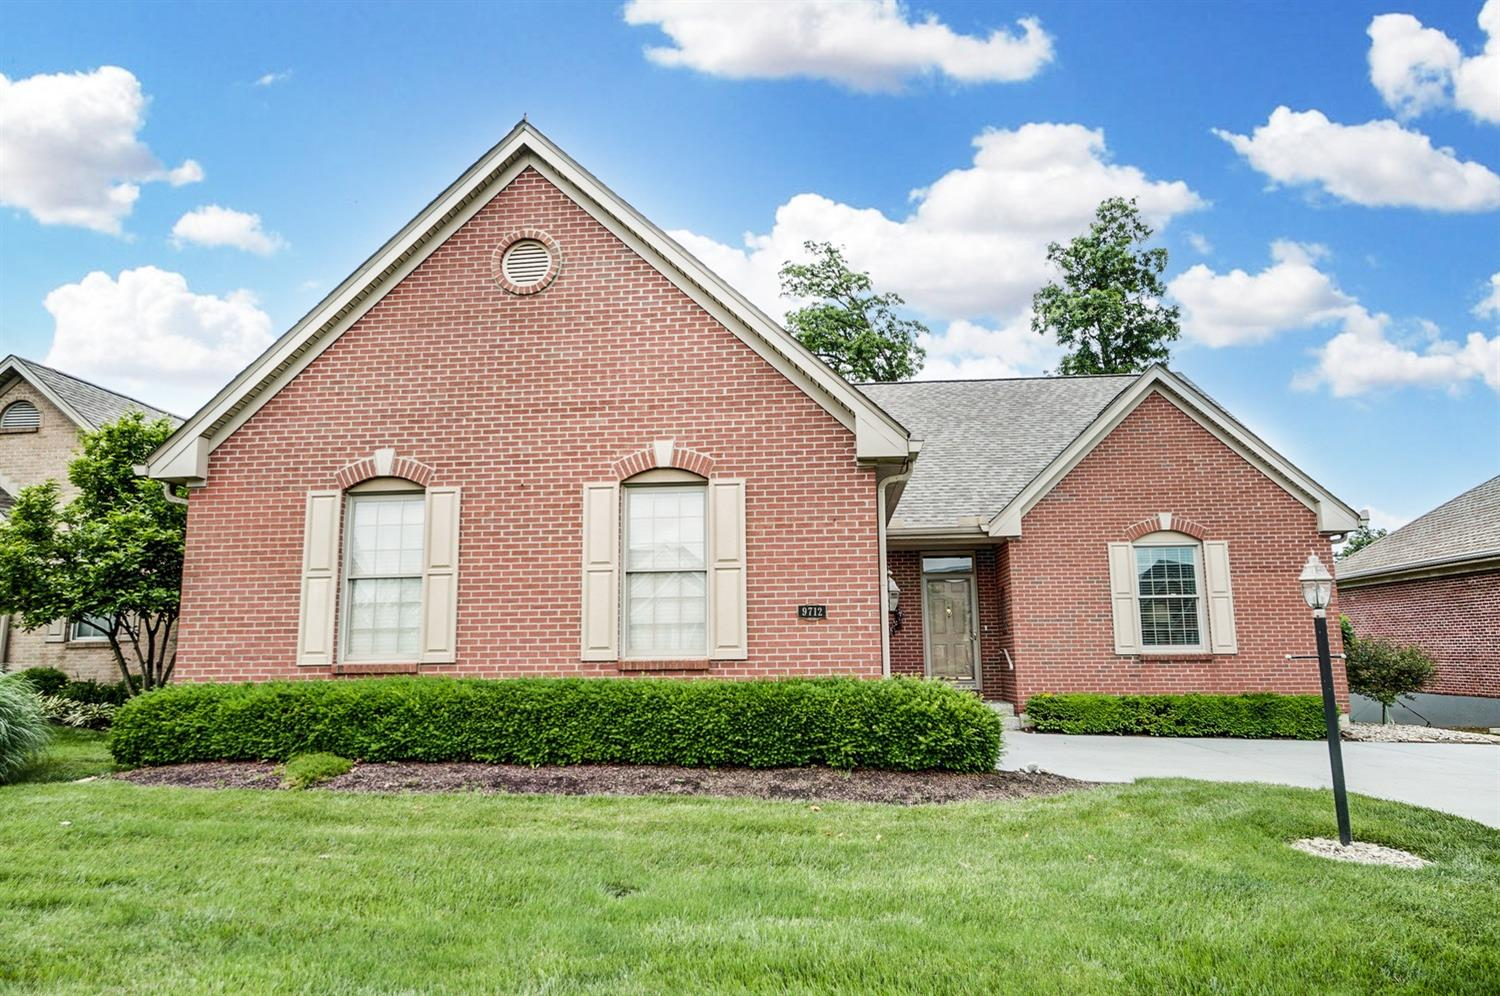 9712 Pebble View Drive Colerain Twp.West, OH